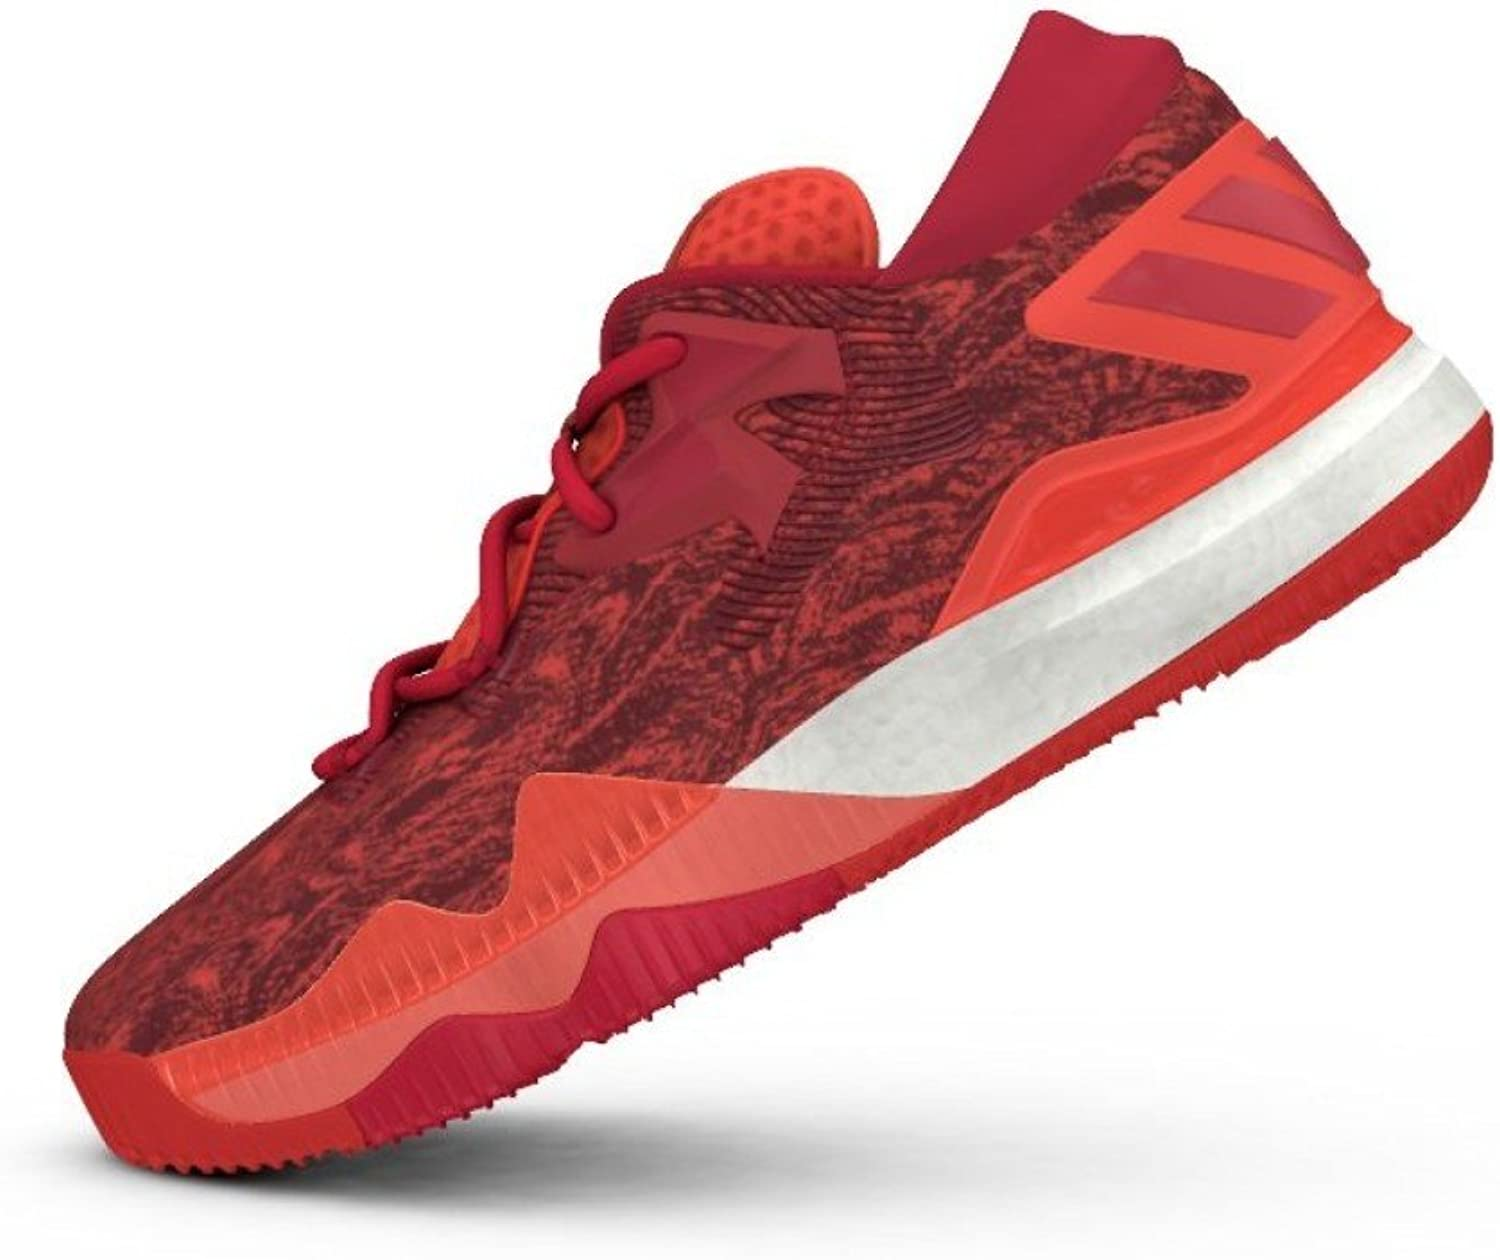 Adidas Mens Crazylight Boost Low 2016 Solar Red White Lace up Basketball shoes